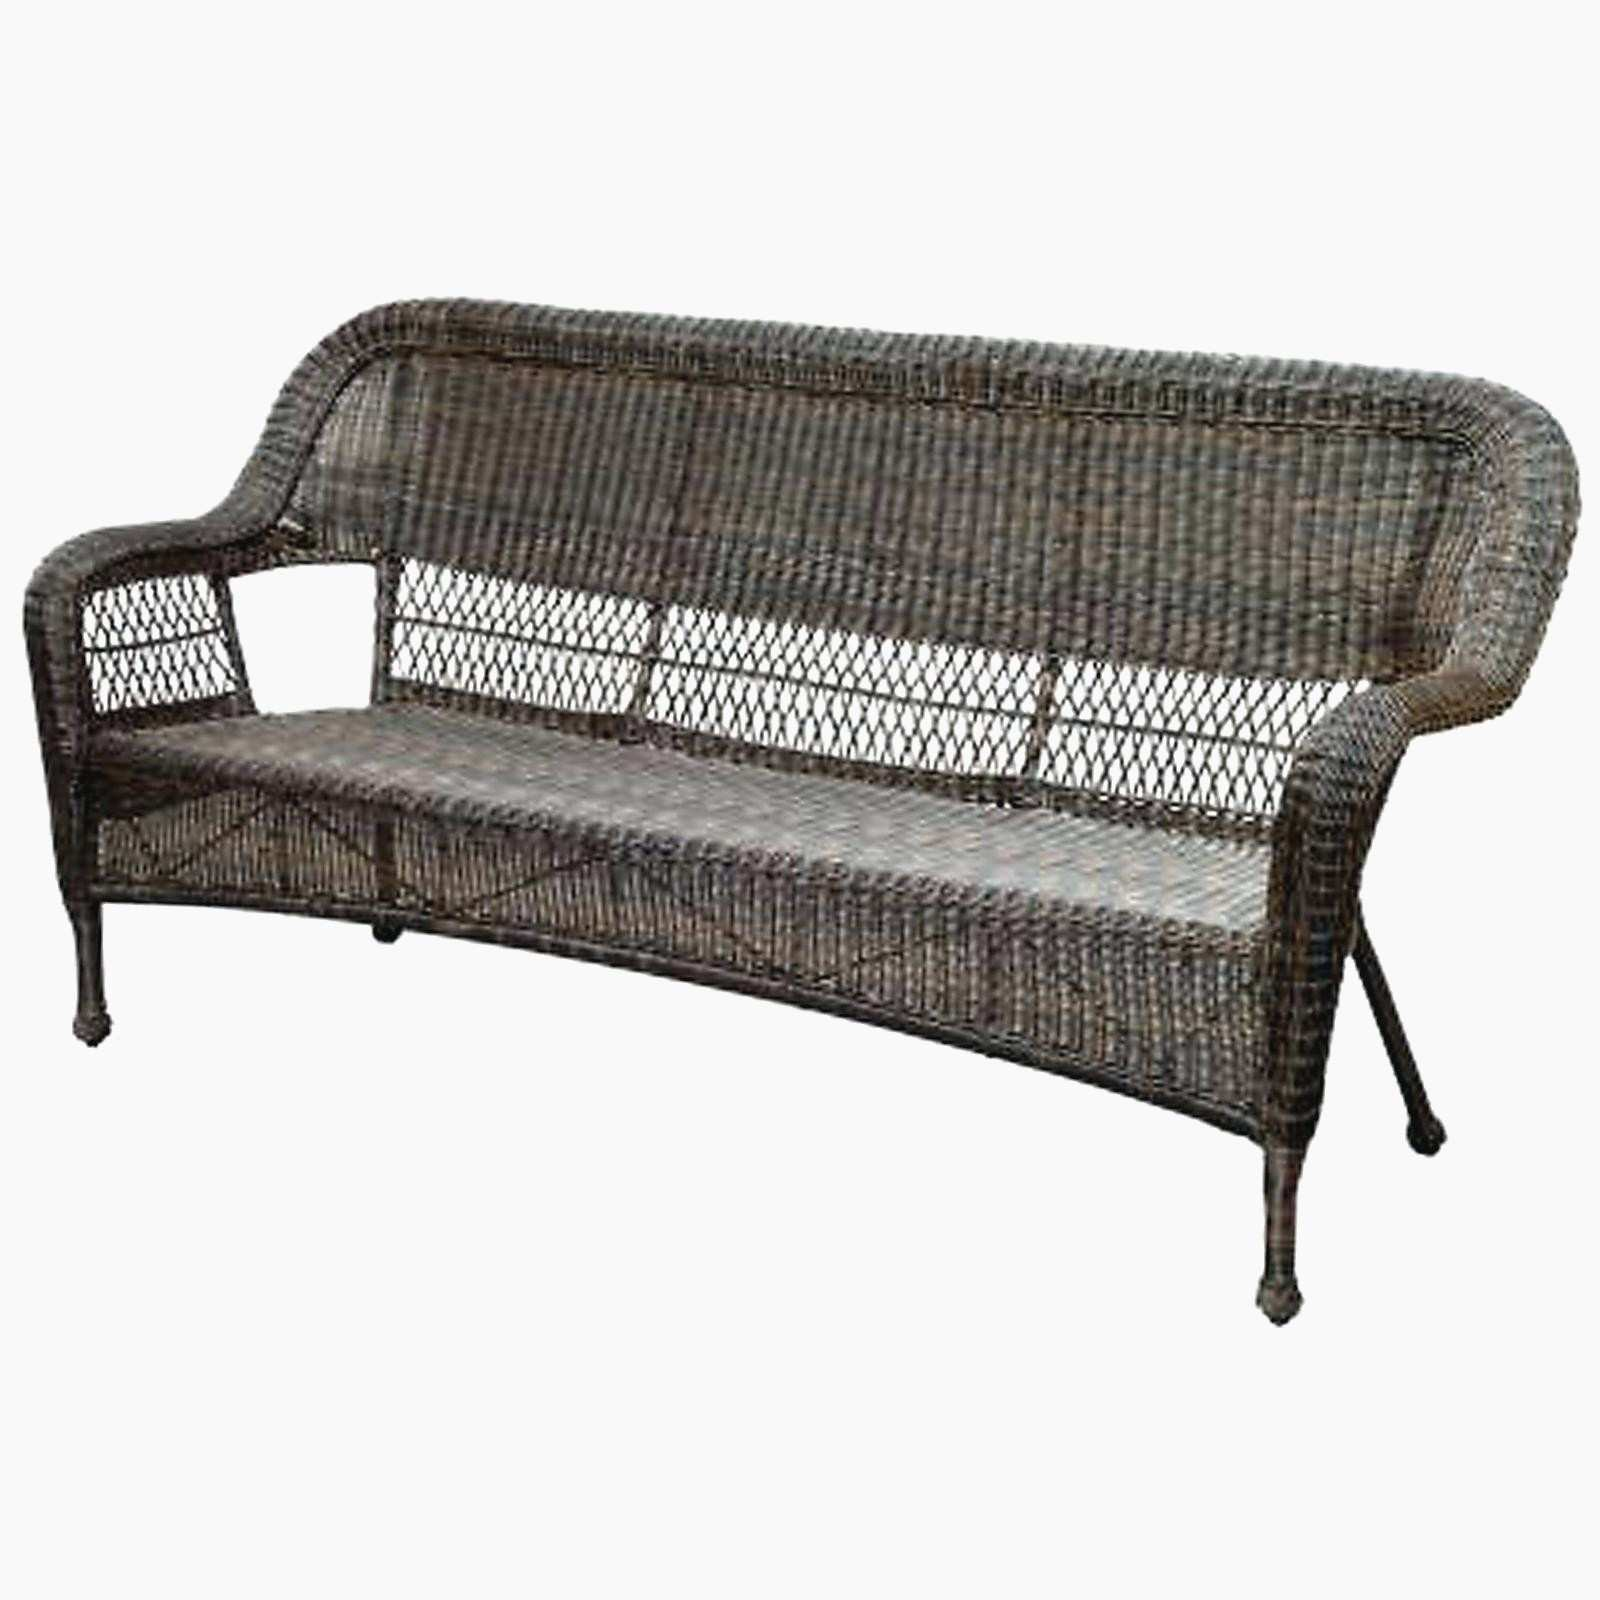 Double Photo Frame Elegant Daybeds Daybeds for Sale Round Daybed ...